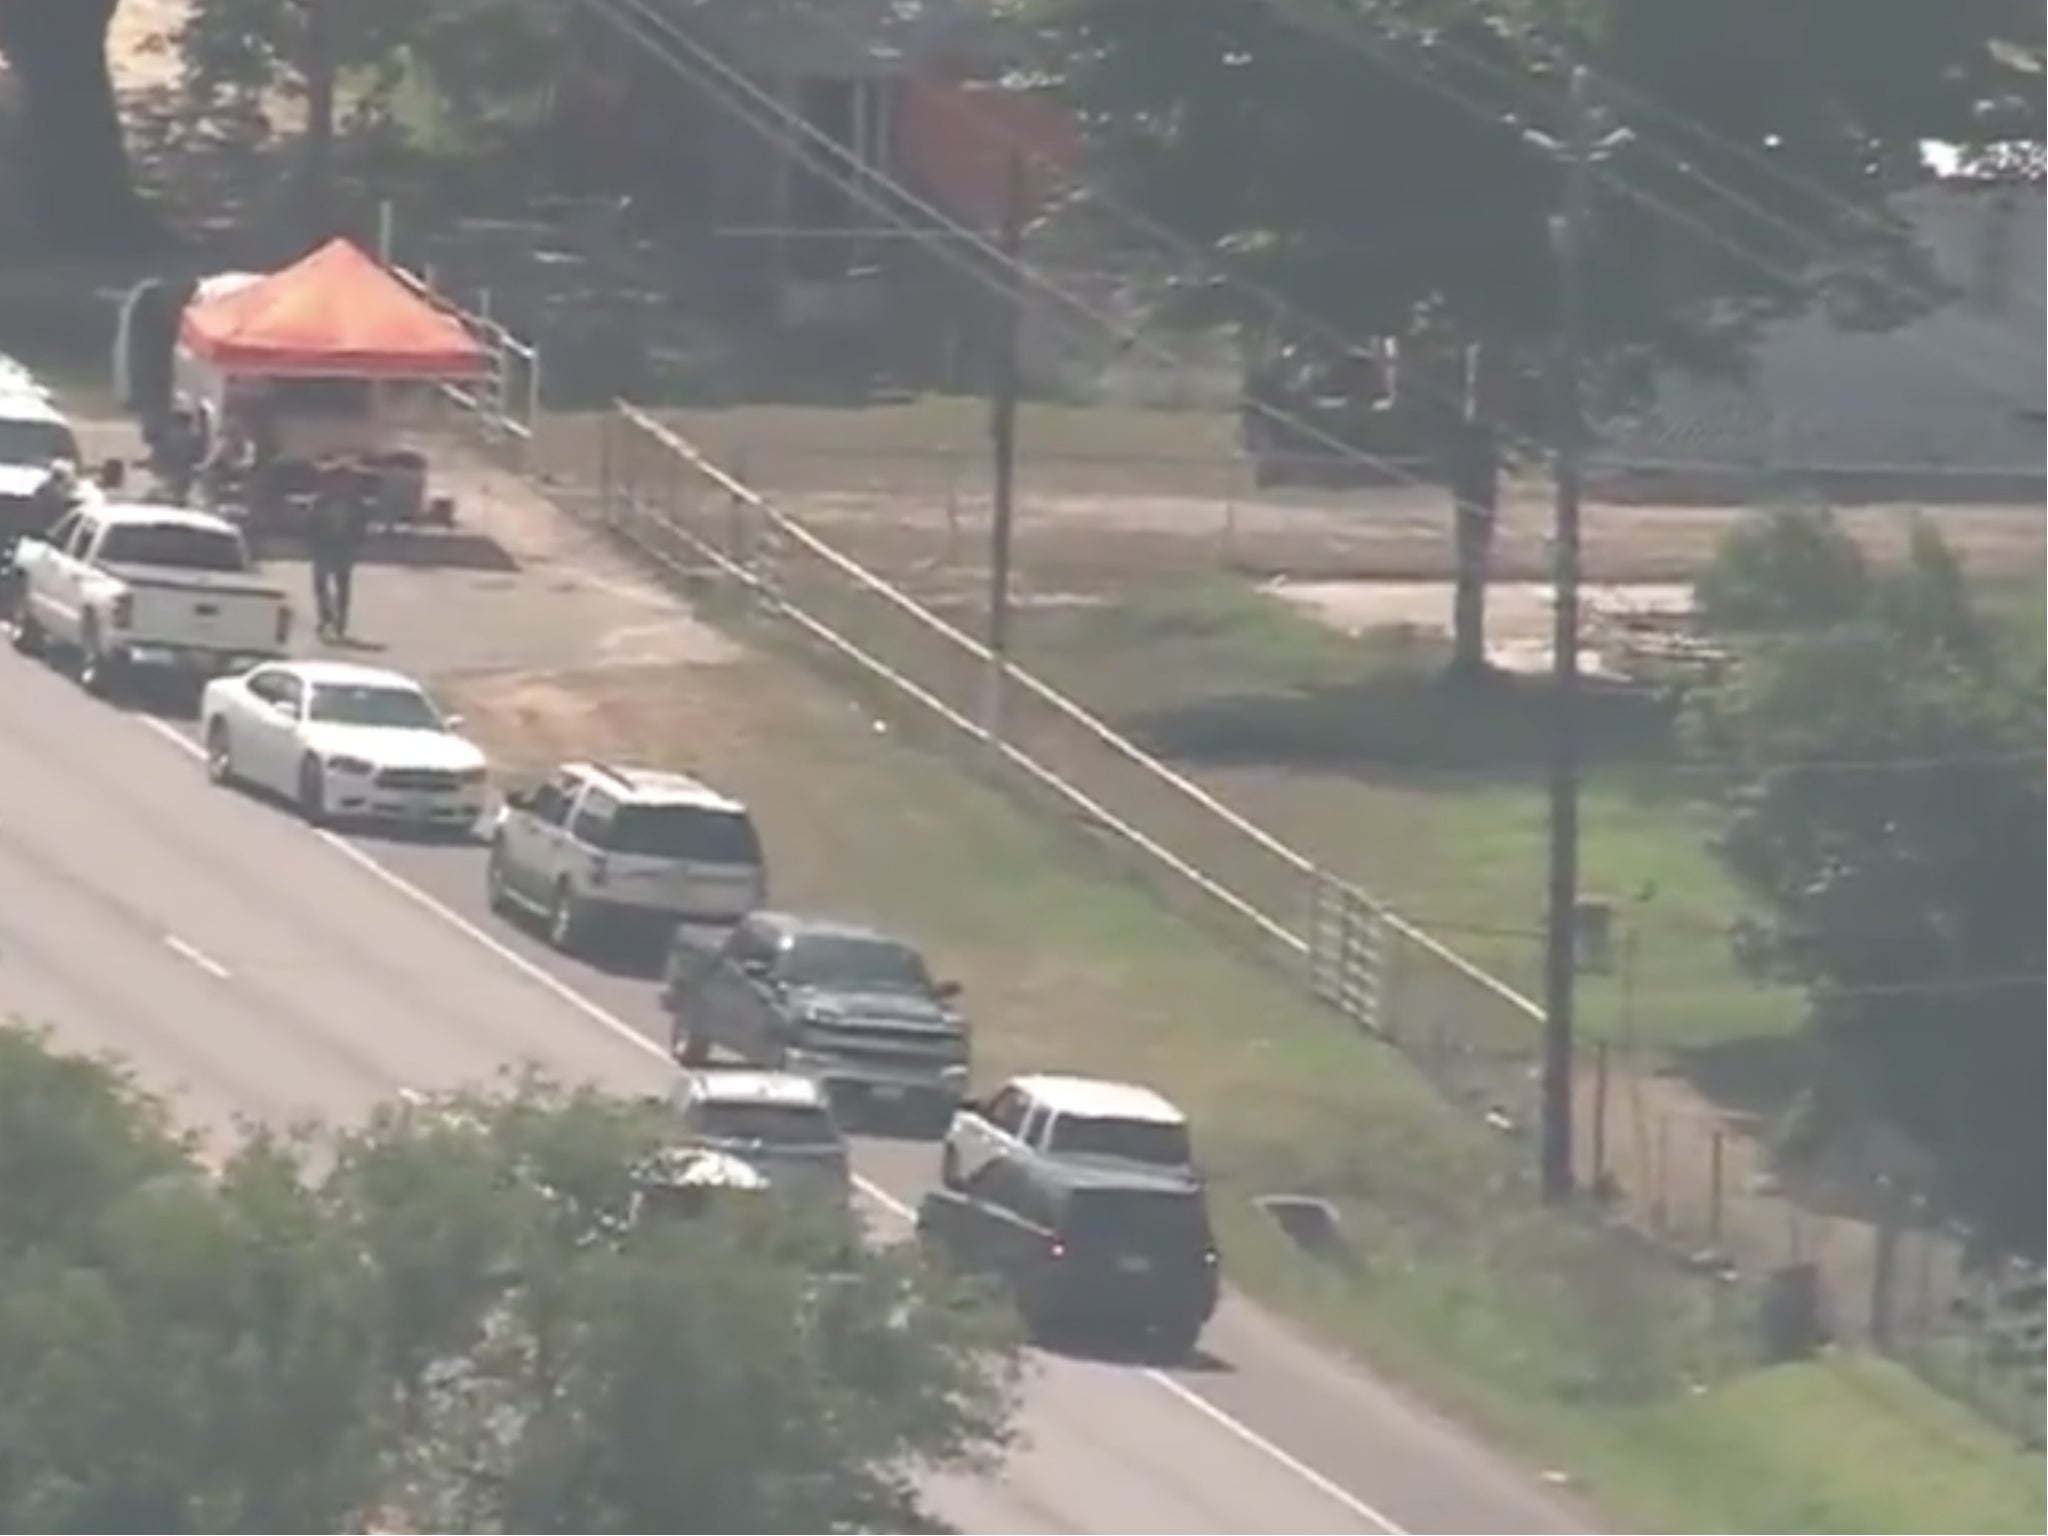 Santa Fe shooting: Police say explosive devices found in